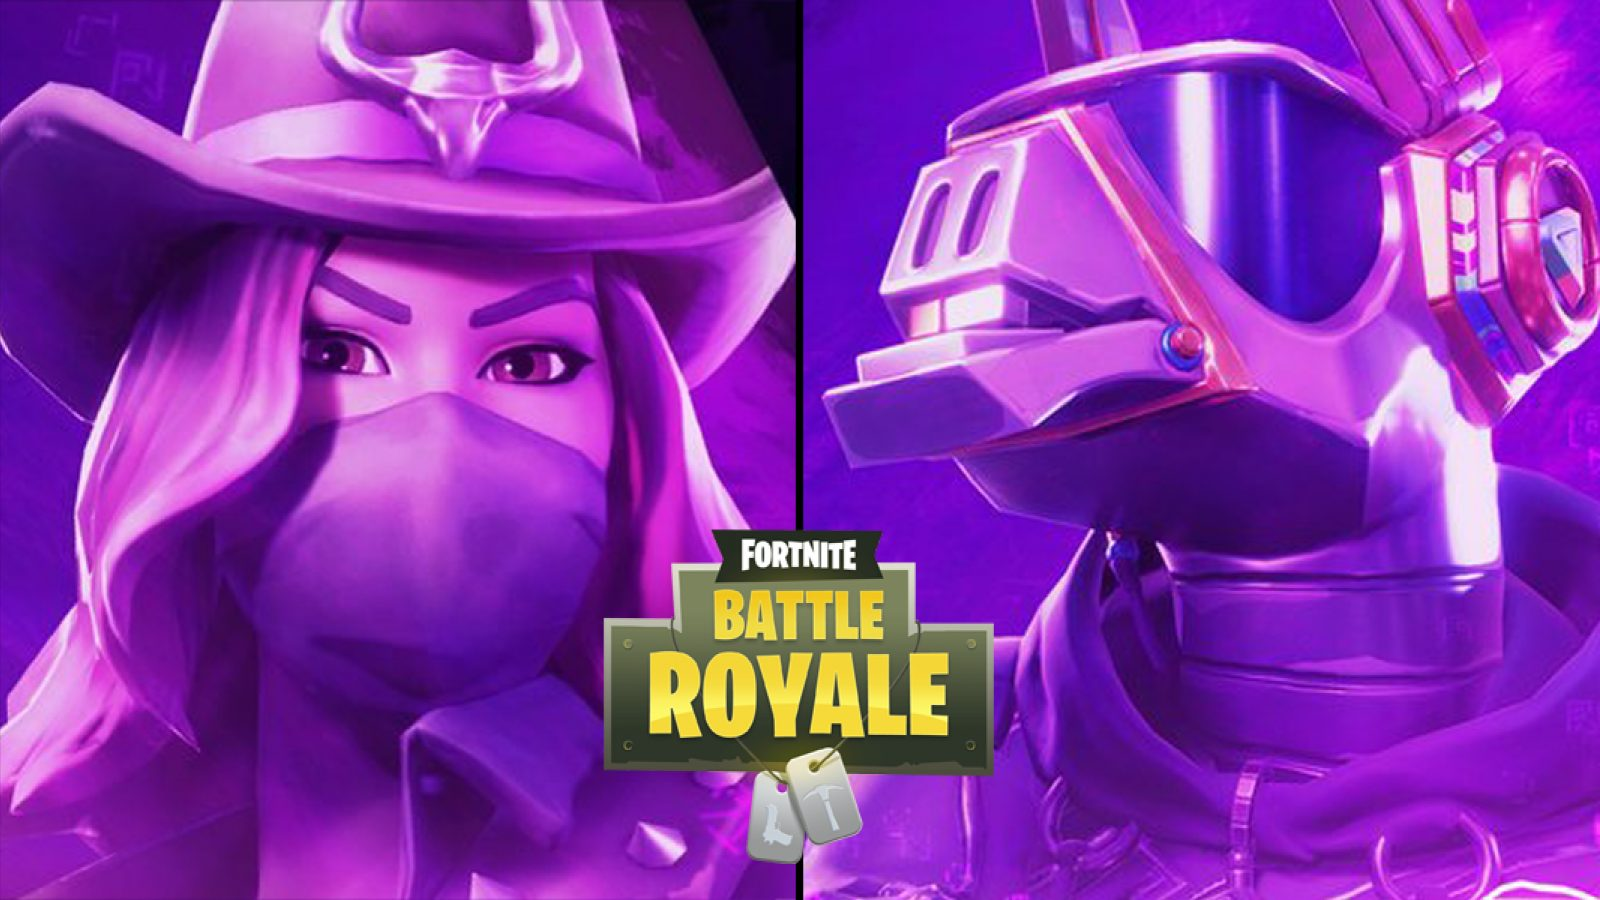 The Fortnite Season 6 teaser images seem to be forming a bigger 1600x900